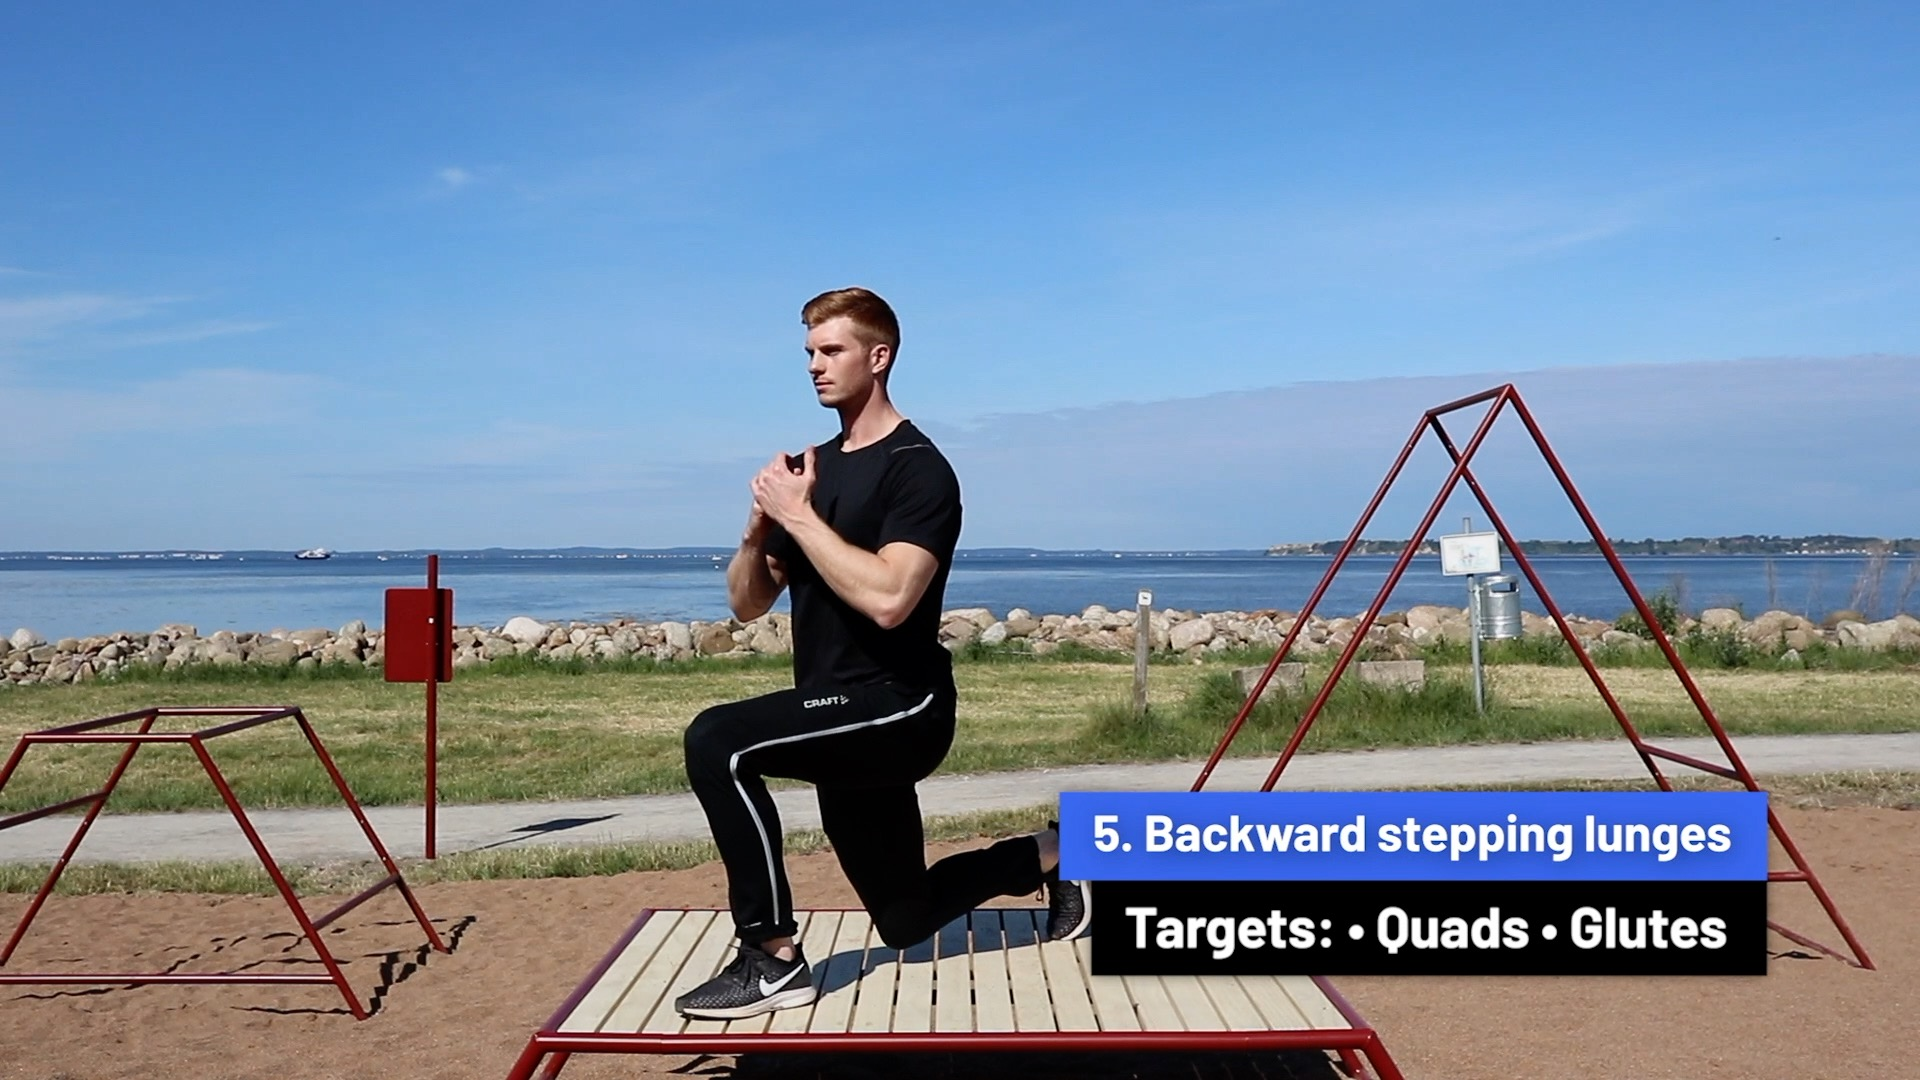 Backward stepping lunges